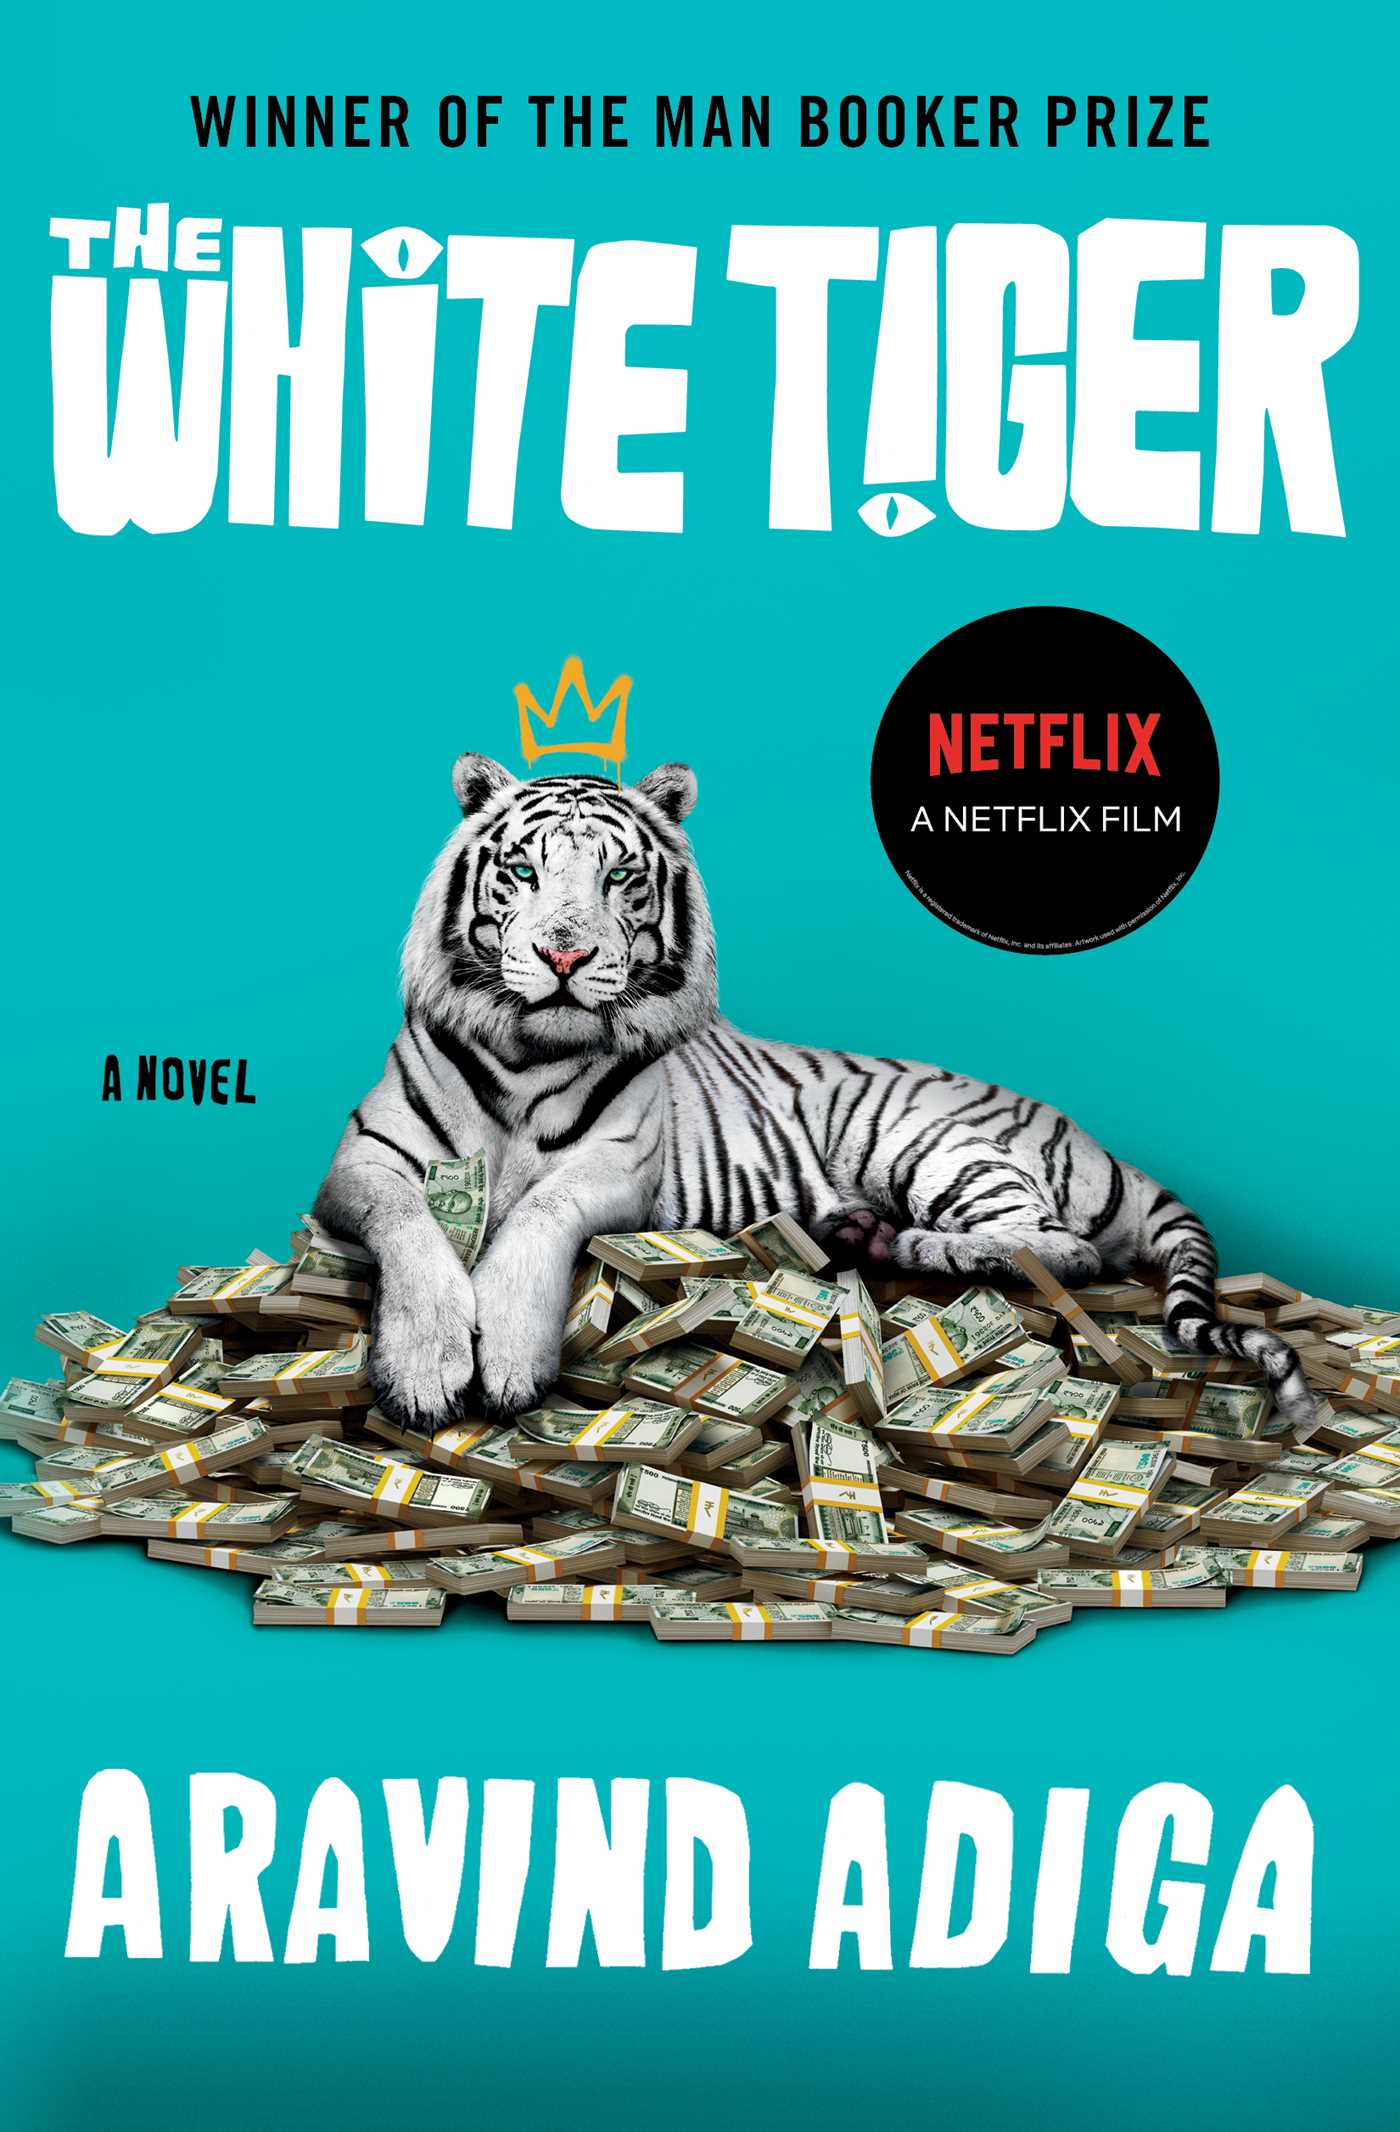 The-white-tiger-9781416562733_hr